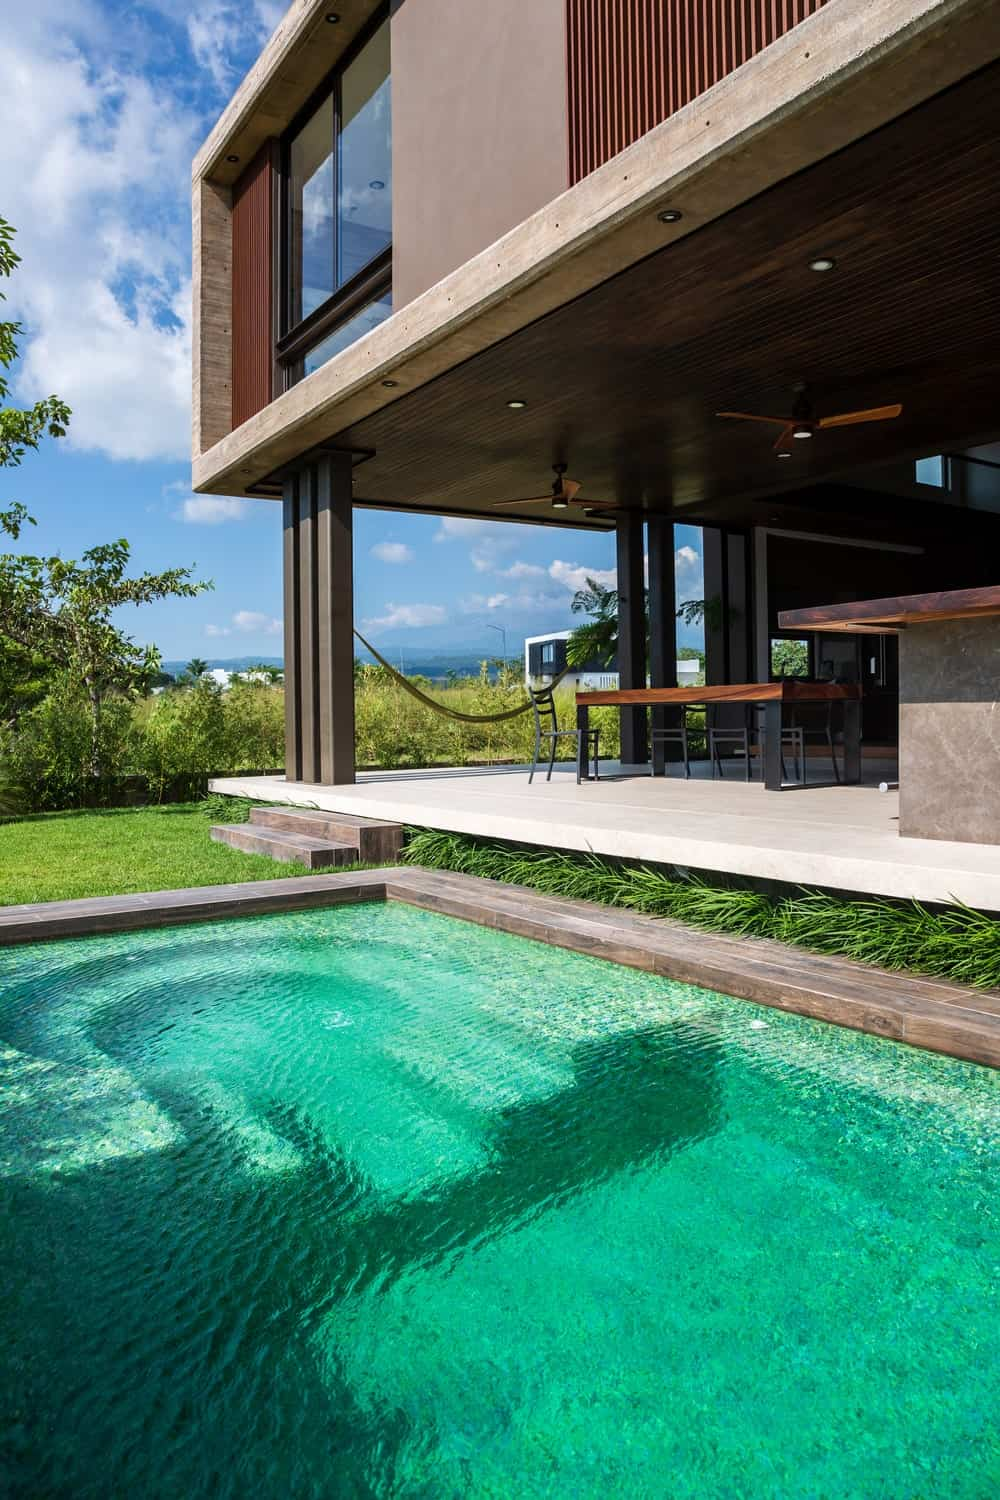 This view of the pool shows the proximity of the pool to the covered patio.